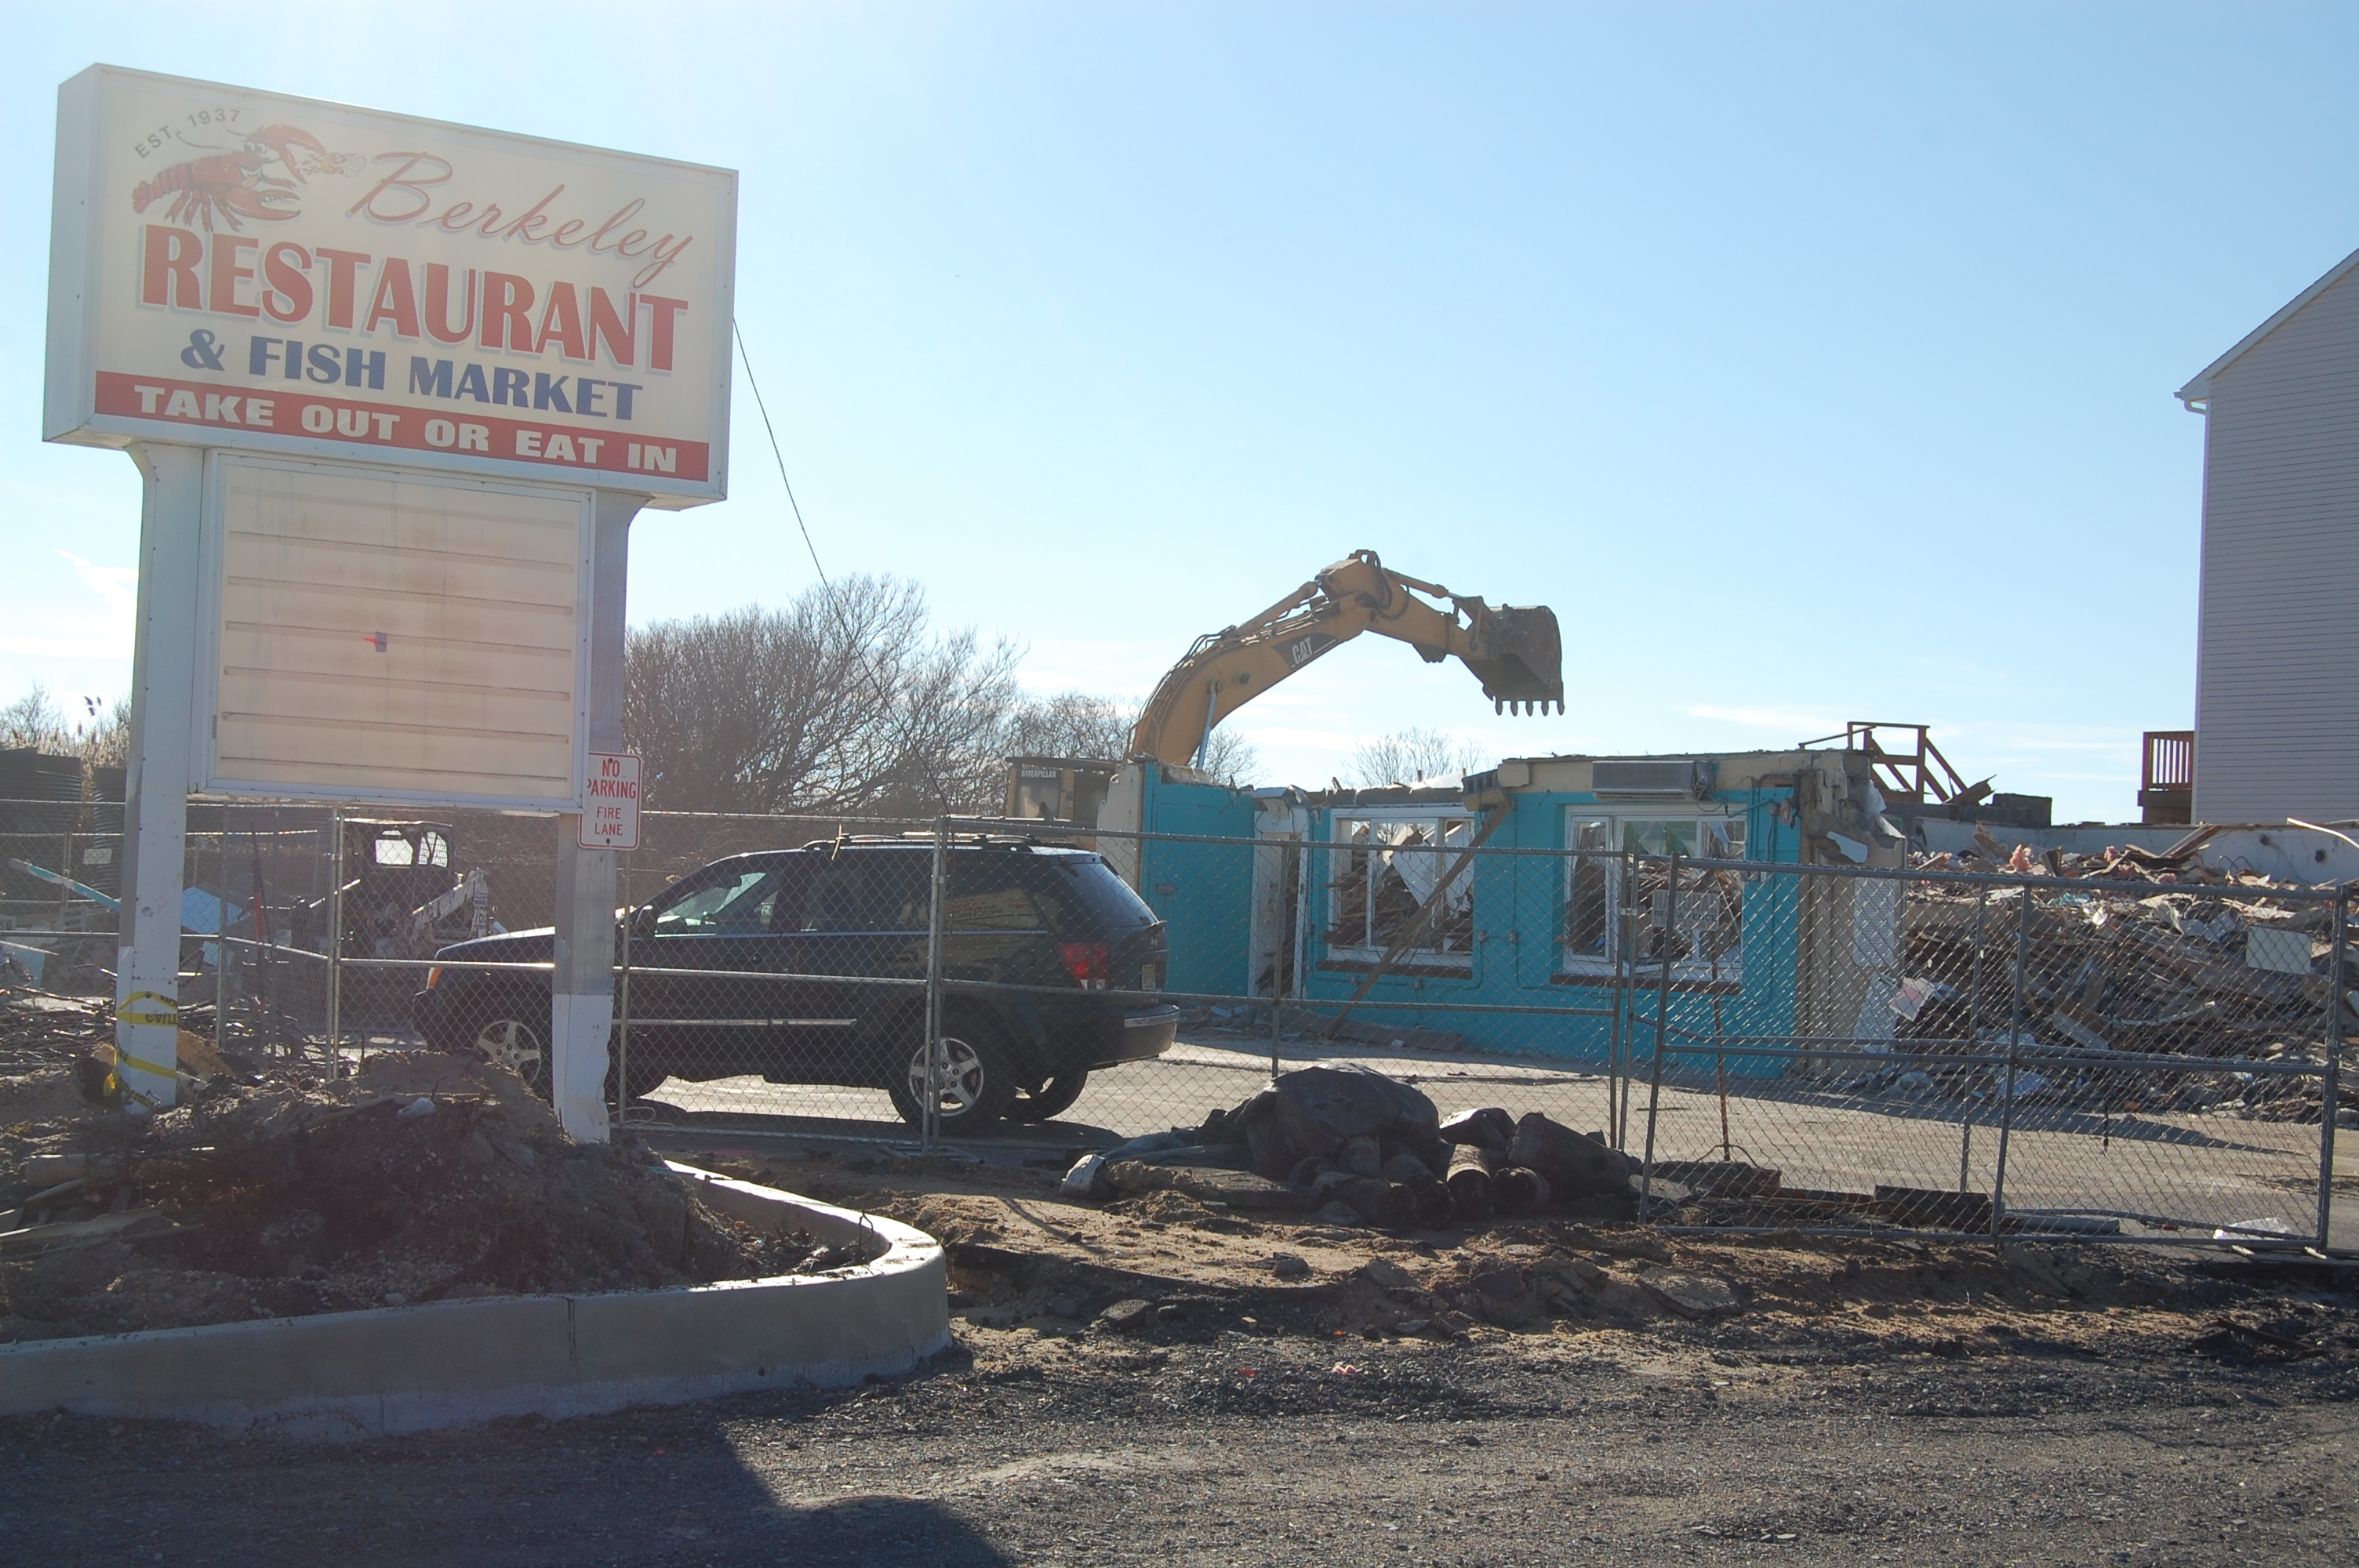 Demolition at the Berkeley Restaurant and Seafood Market, South Seaside Park. (Photo: Daniel Nee)